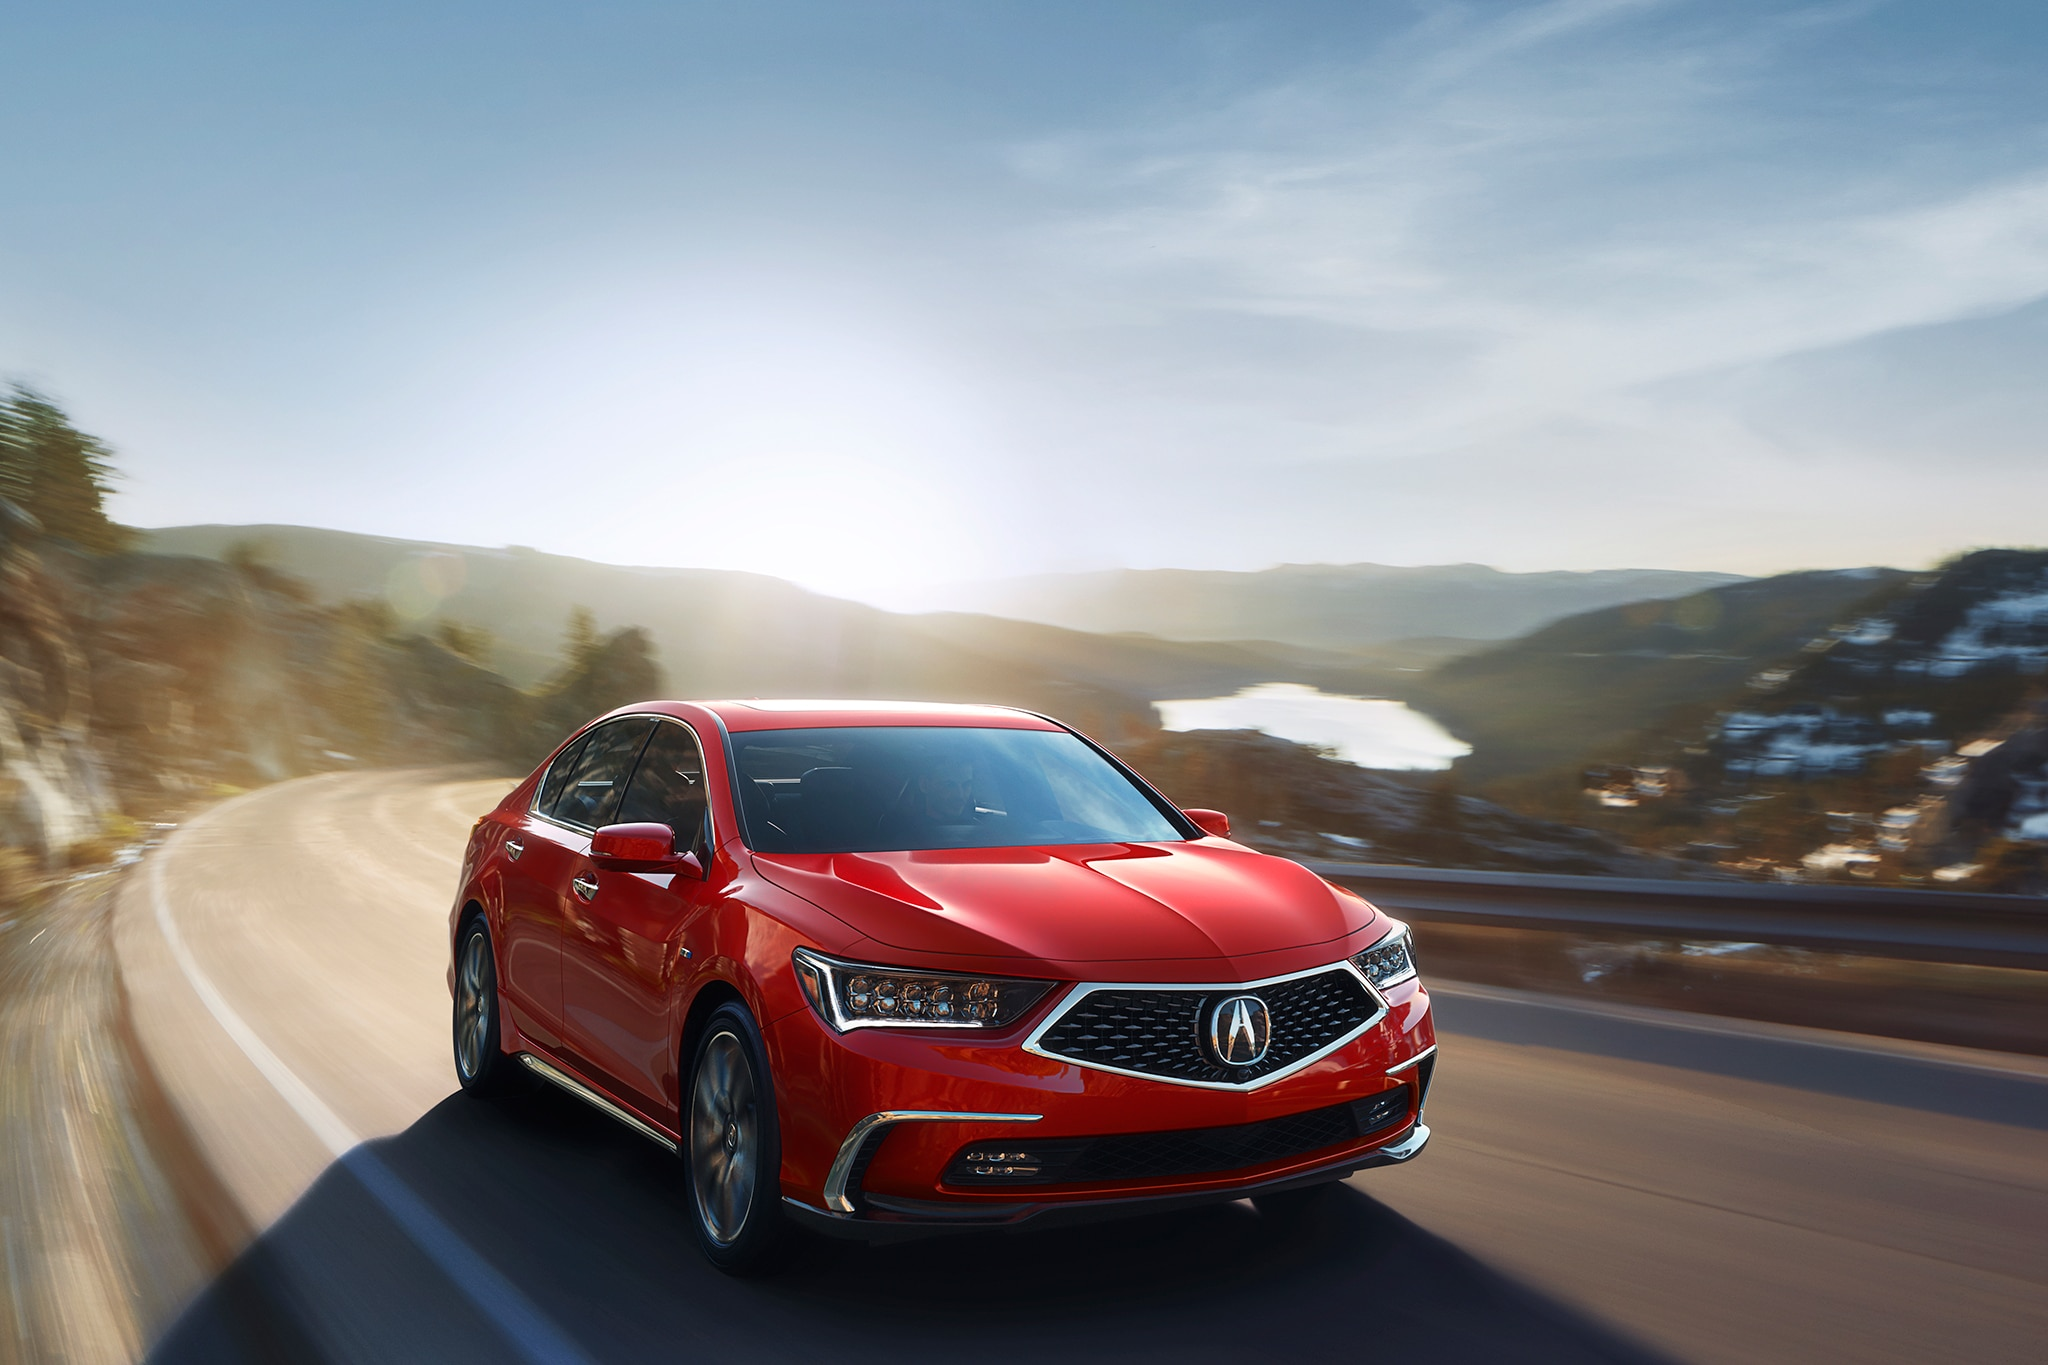 Acura freshens up RLX flagship sedan for 2018